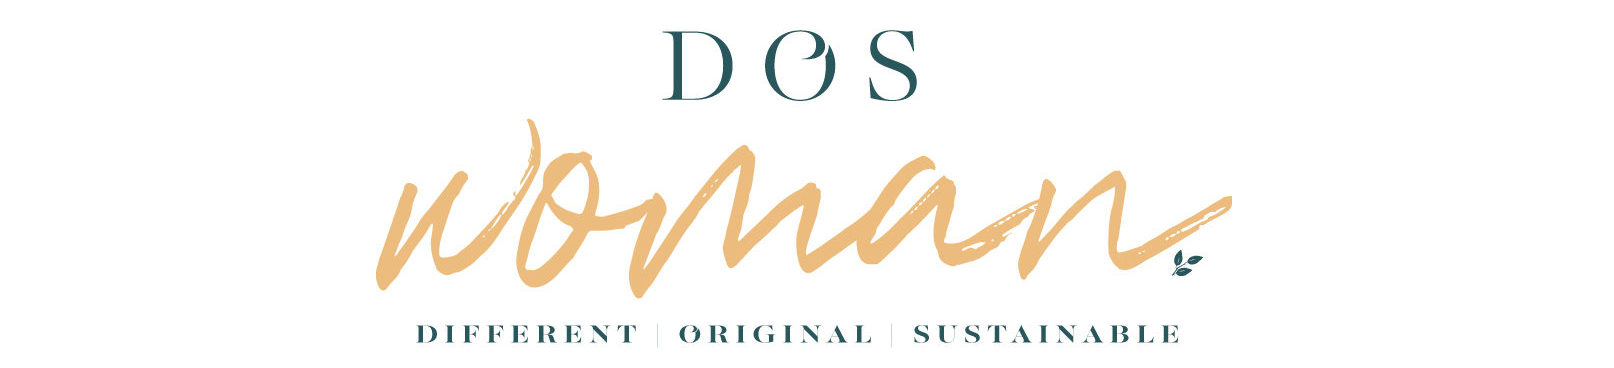 Fair Fashion Giftcard partner: DOS WOMAN